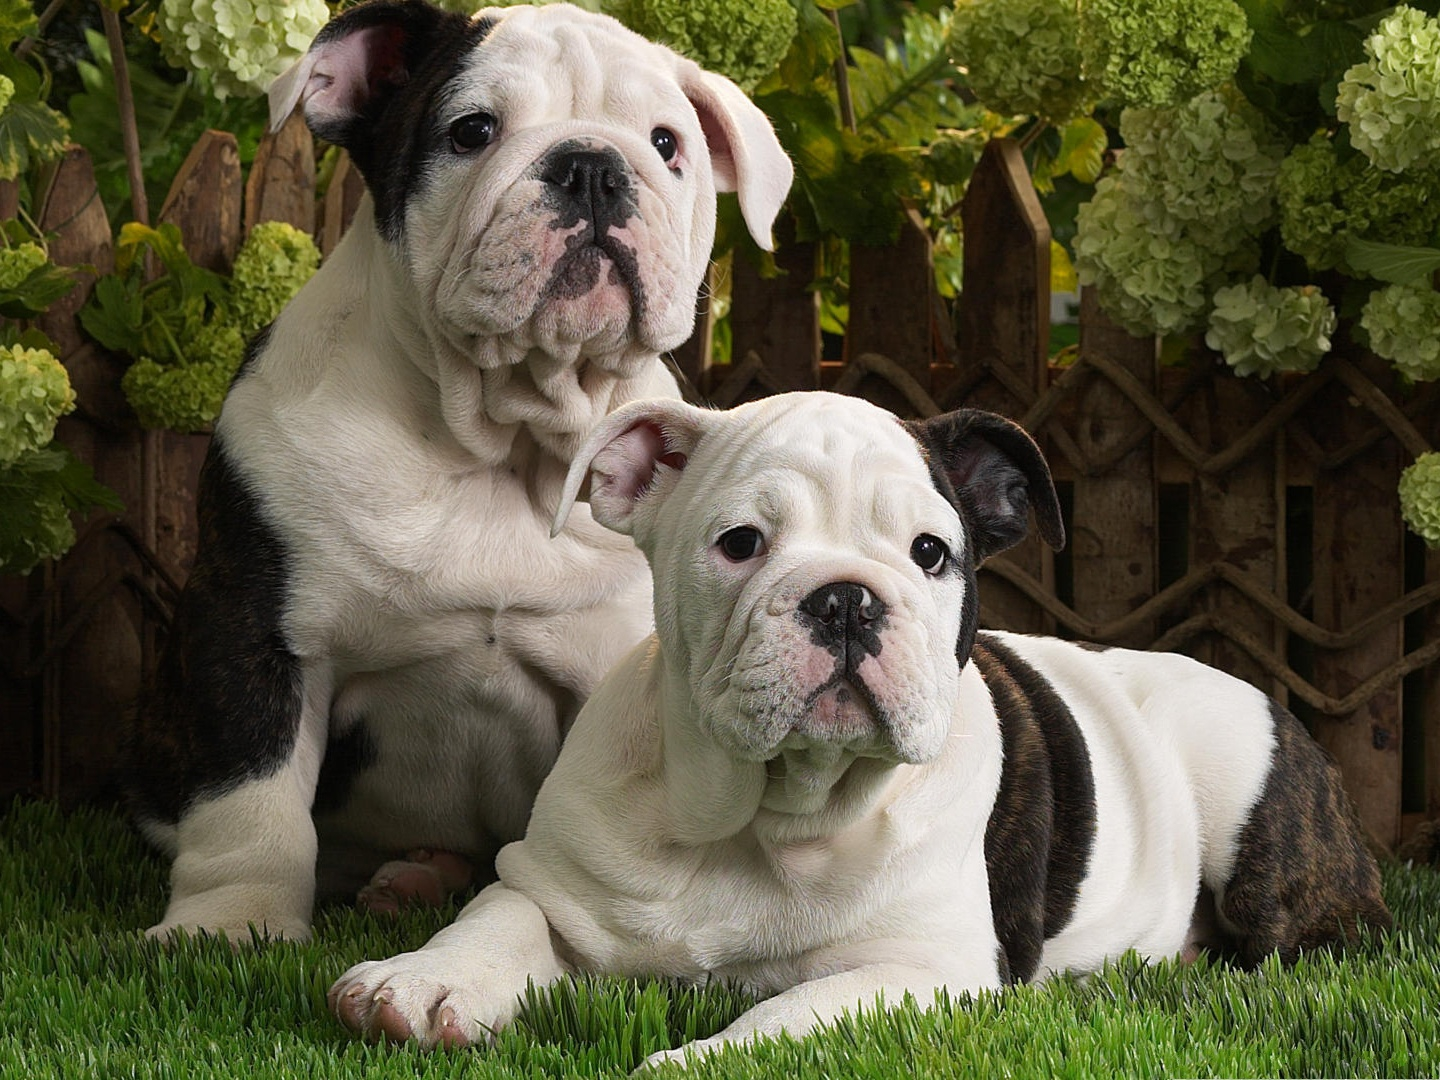 click to free download the wallpaper--Pictures of Bulldog, Two Puppies Close to Each Other, Green Leaves 1440X1080 free wallpaper download